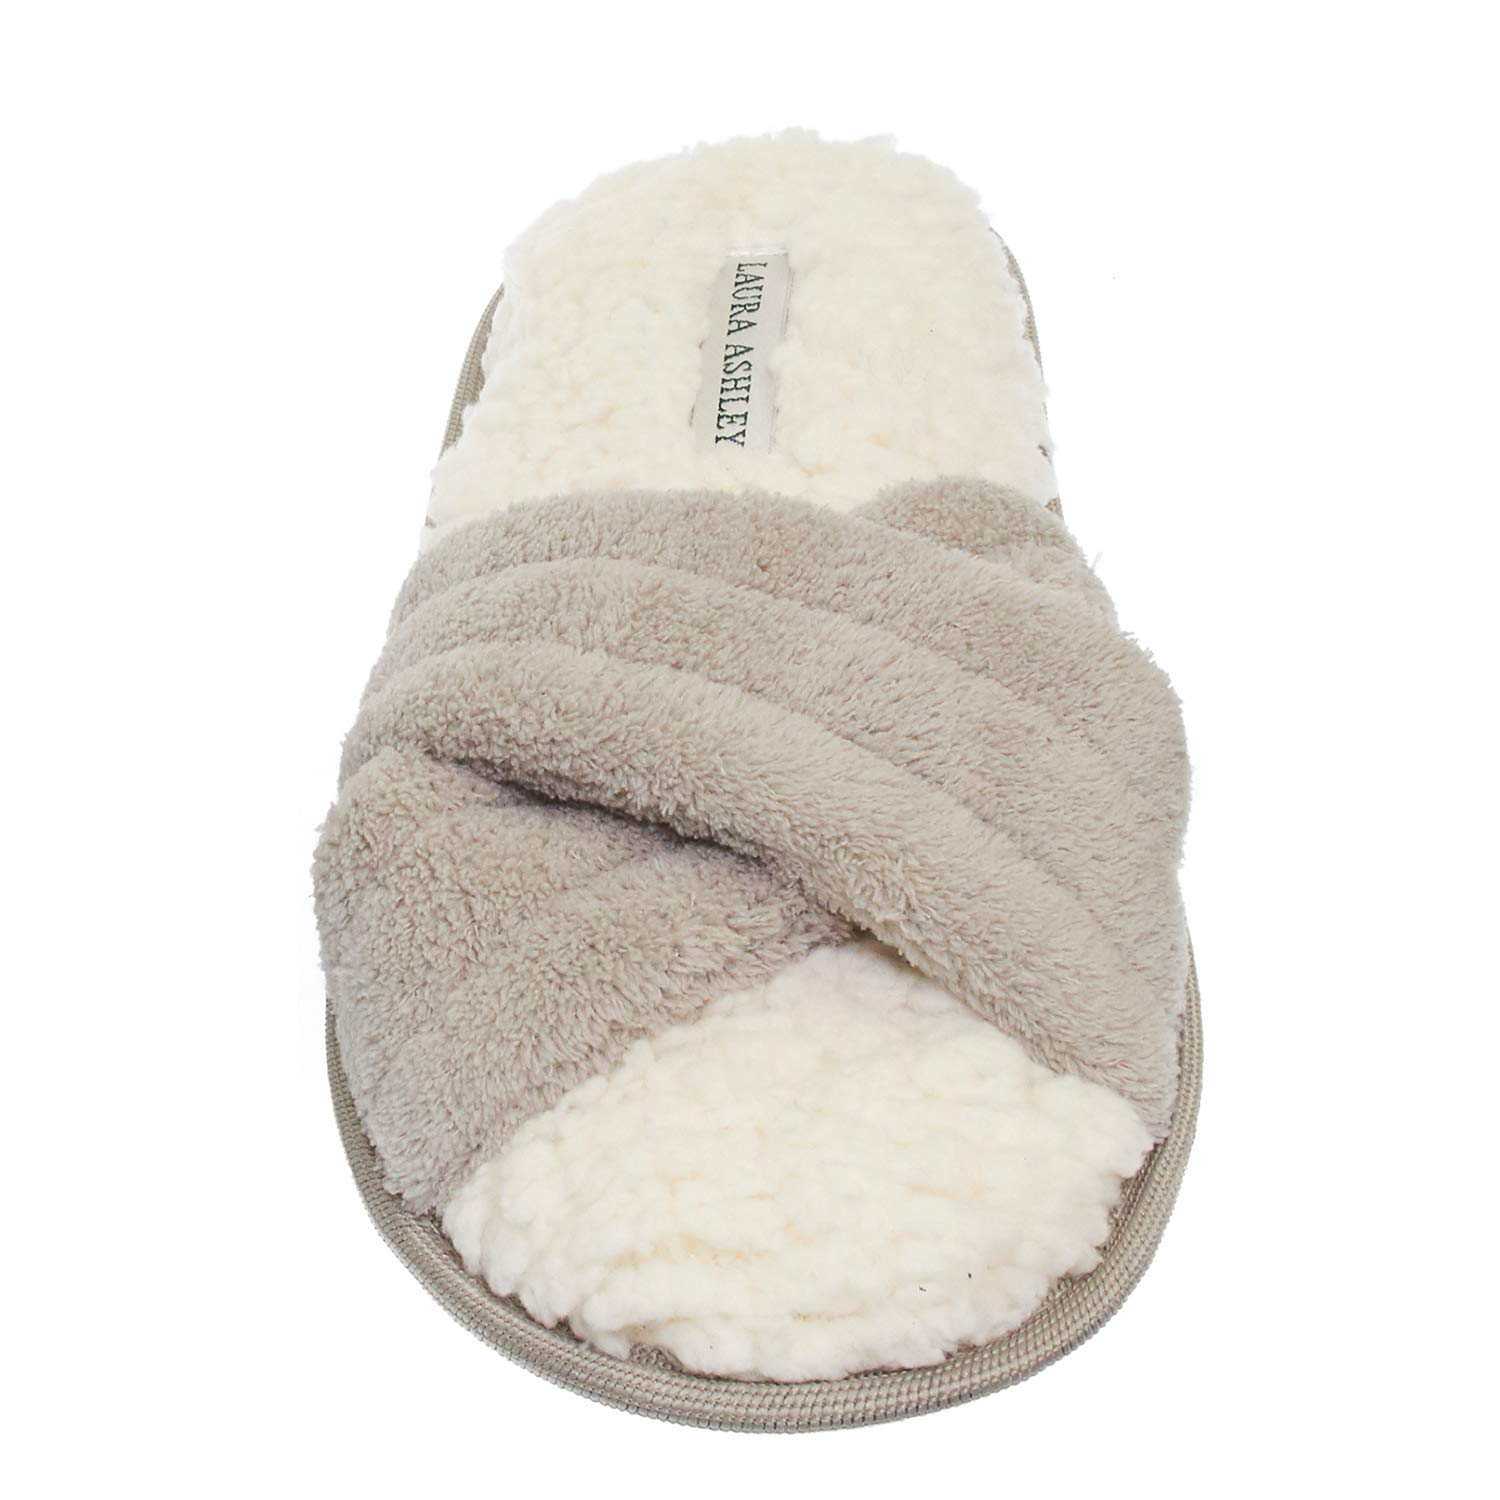 Laura Ashley Womens Ladies Luxury Spa Cross Band Memory Foam Slippers See More Colors and Sizes